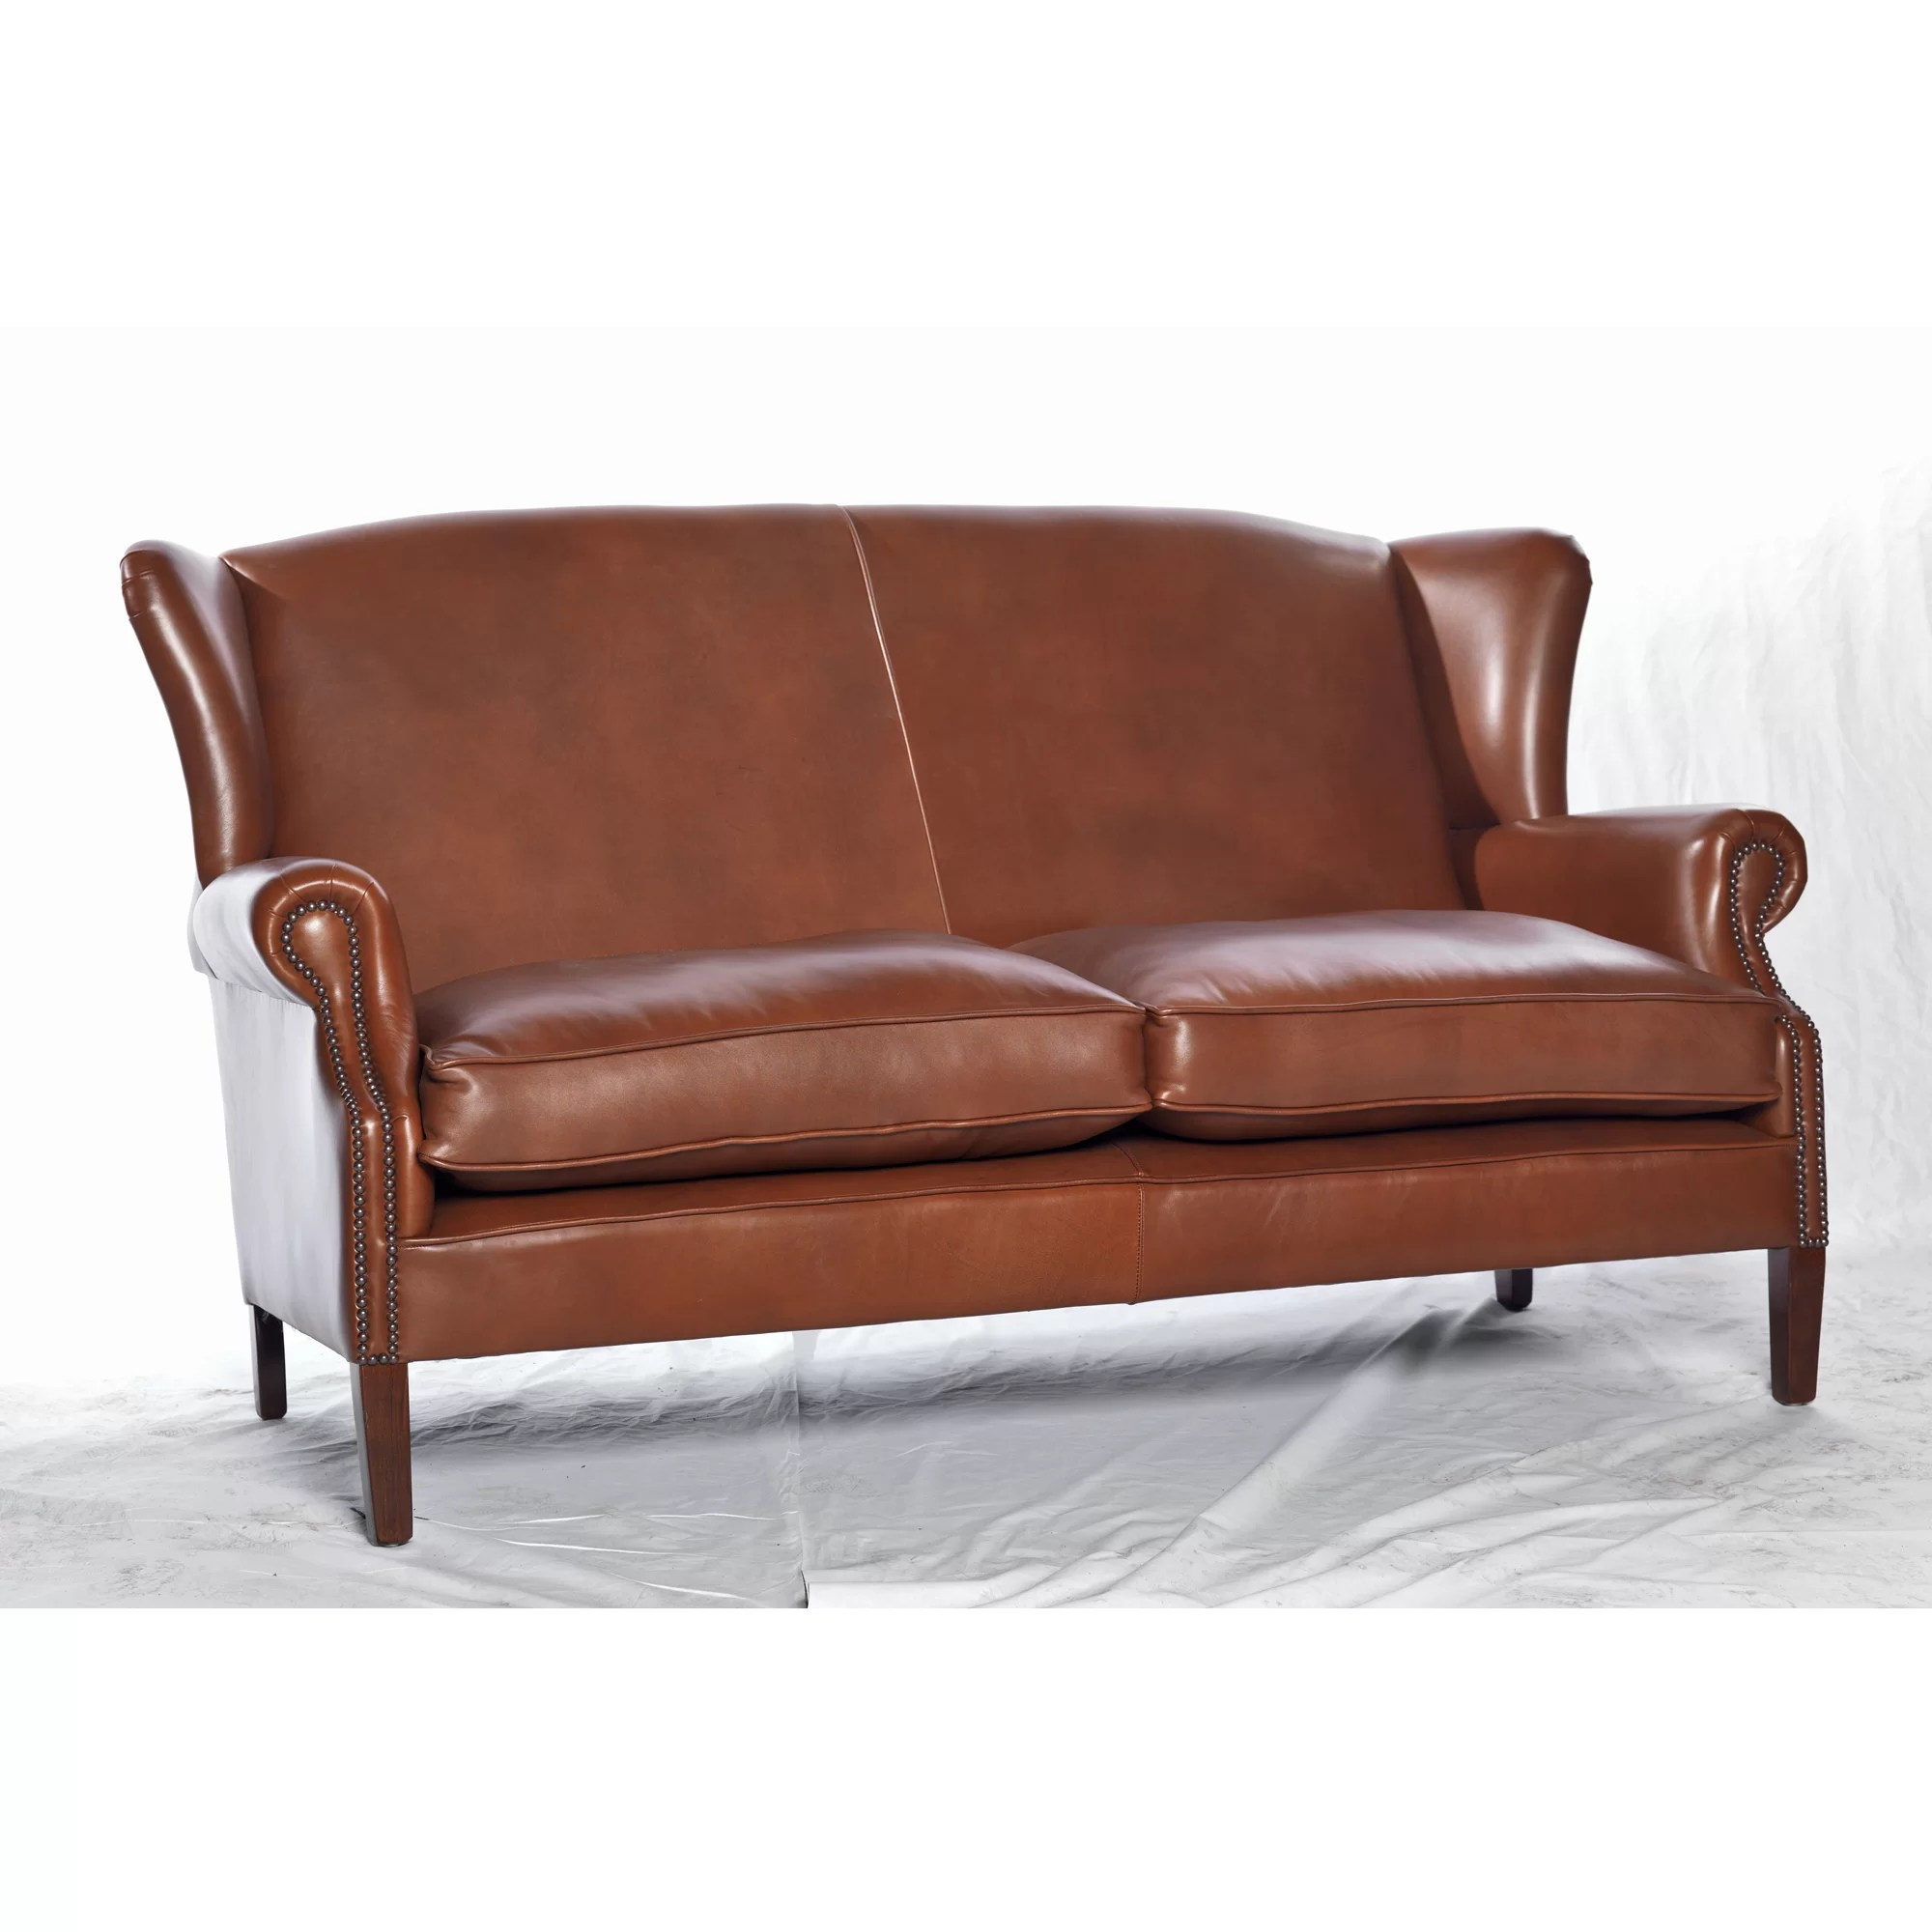 Chesterfield Sofa Leder Chesterfield Sofa Leder Chesterfield Sofa Leder B Rostuhl